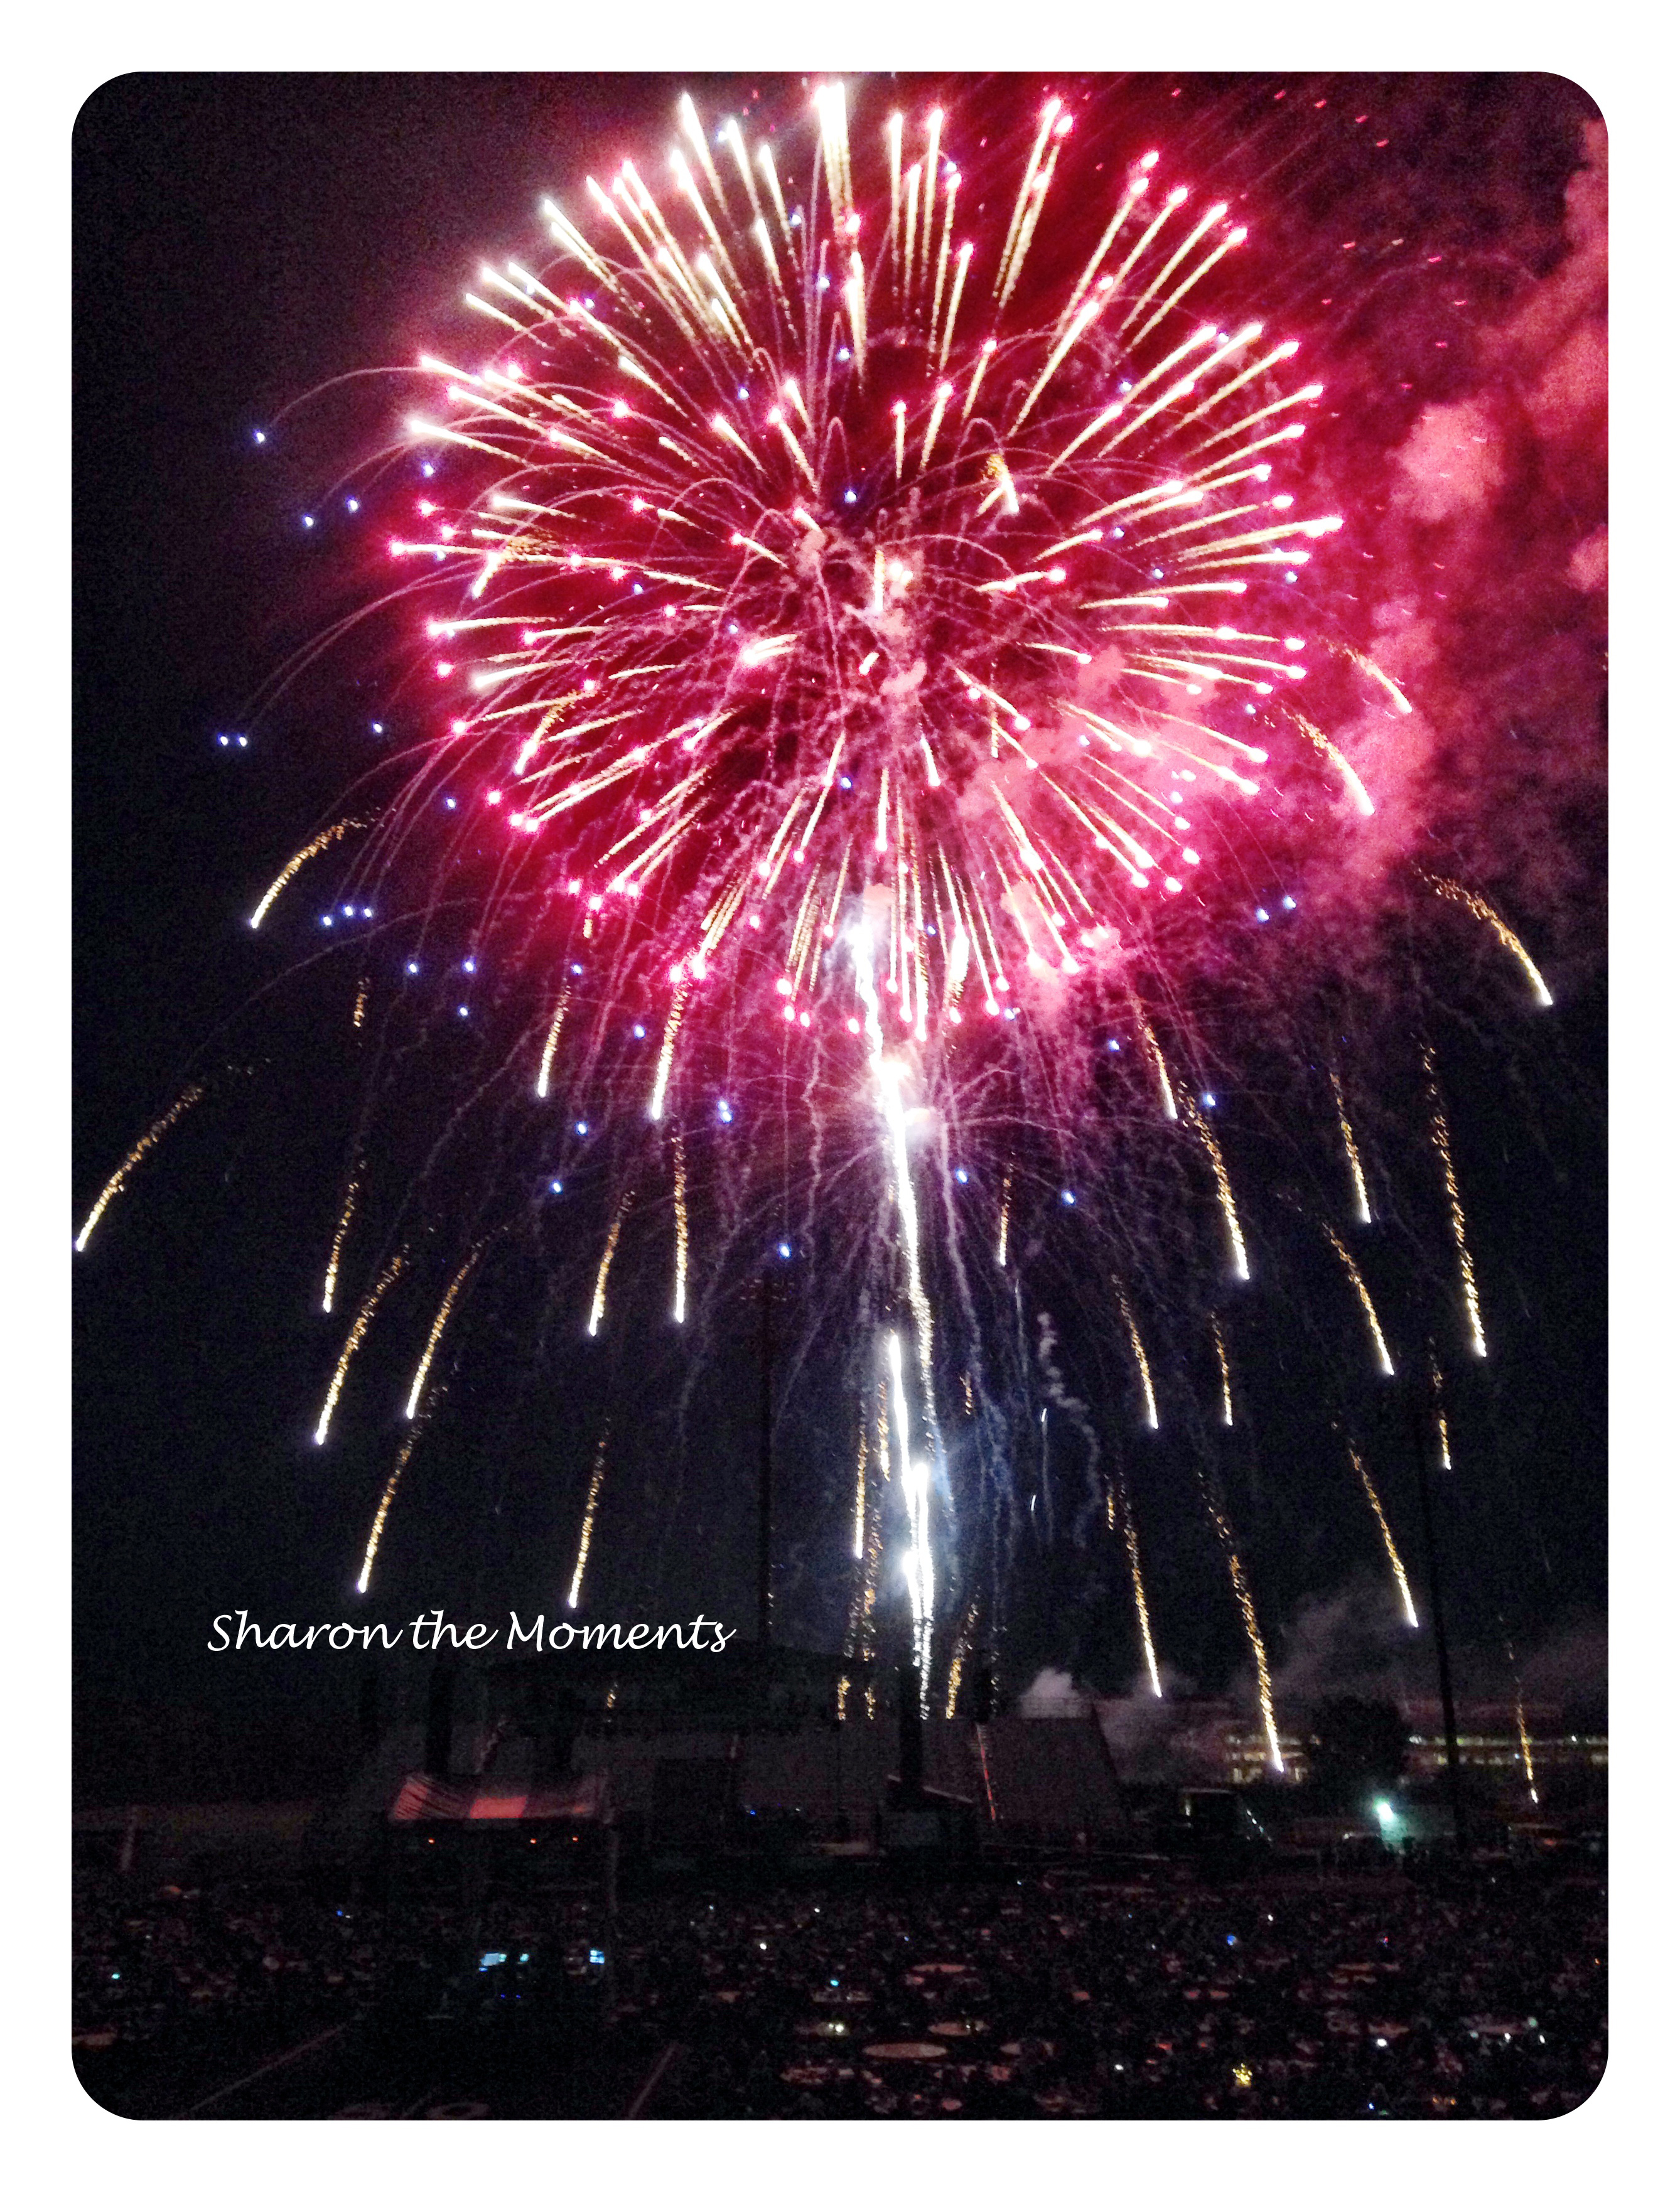 Dublin OH 4th of July Celebration|Sharon the Moments Blog